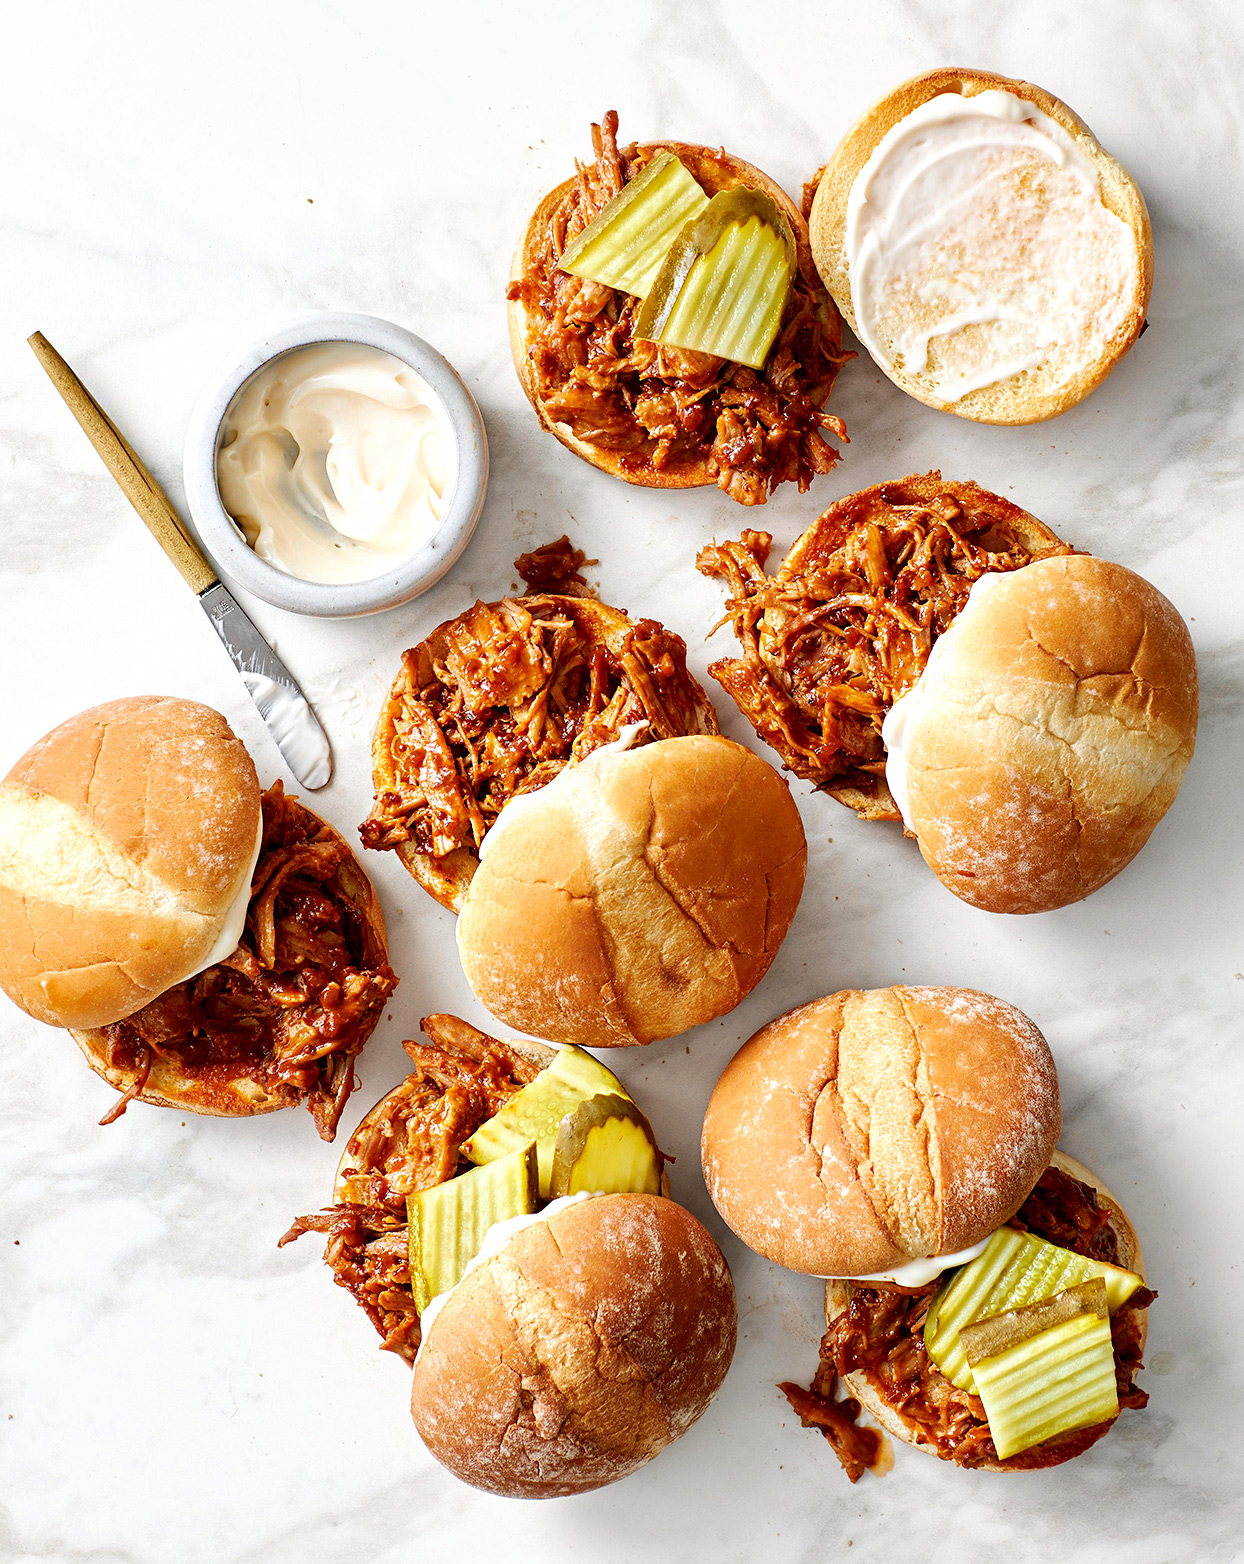 Cuban-Style Barbecue Pulled Pork sandwiches